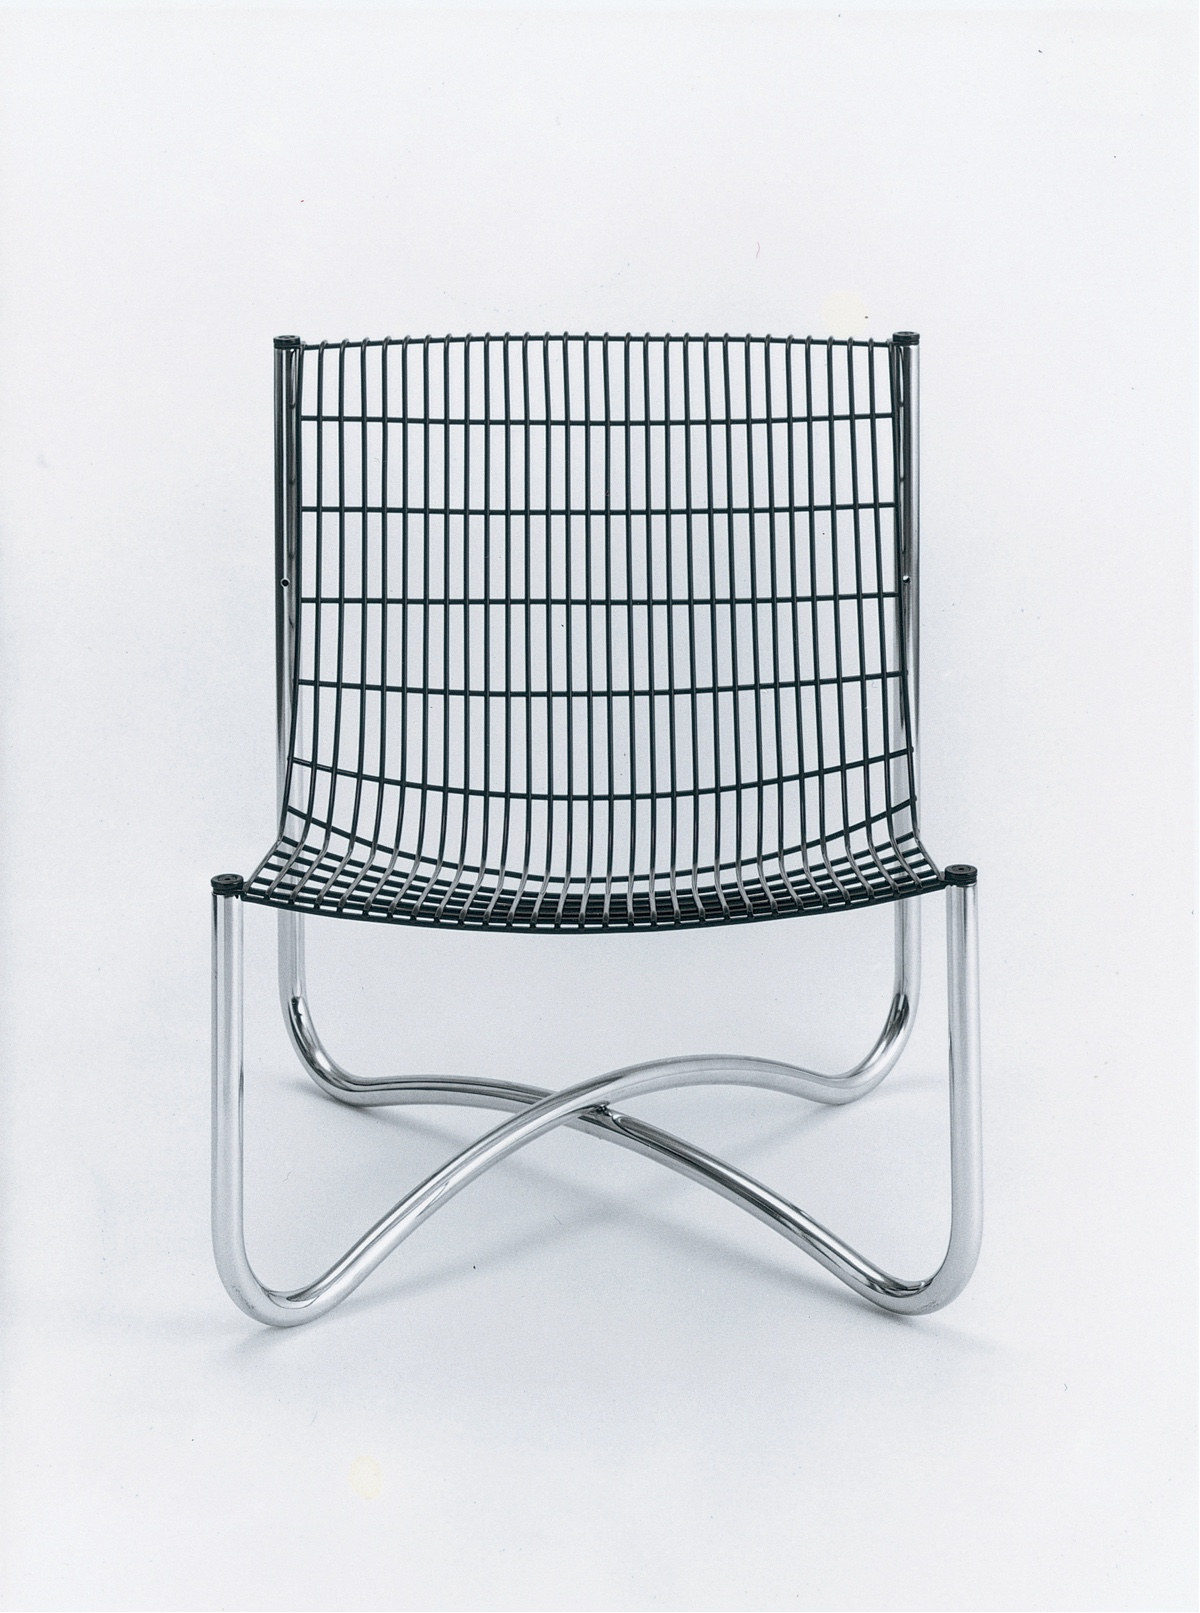 Abacus 700 outdoor chair. Image via Alistair Welch.